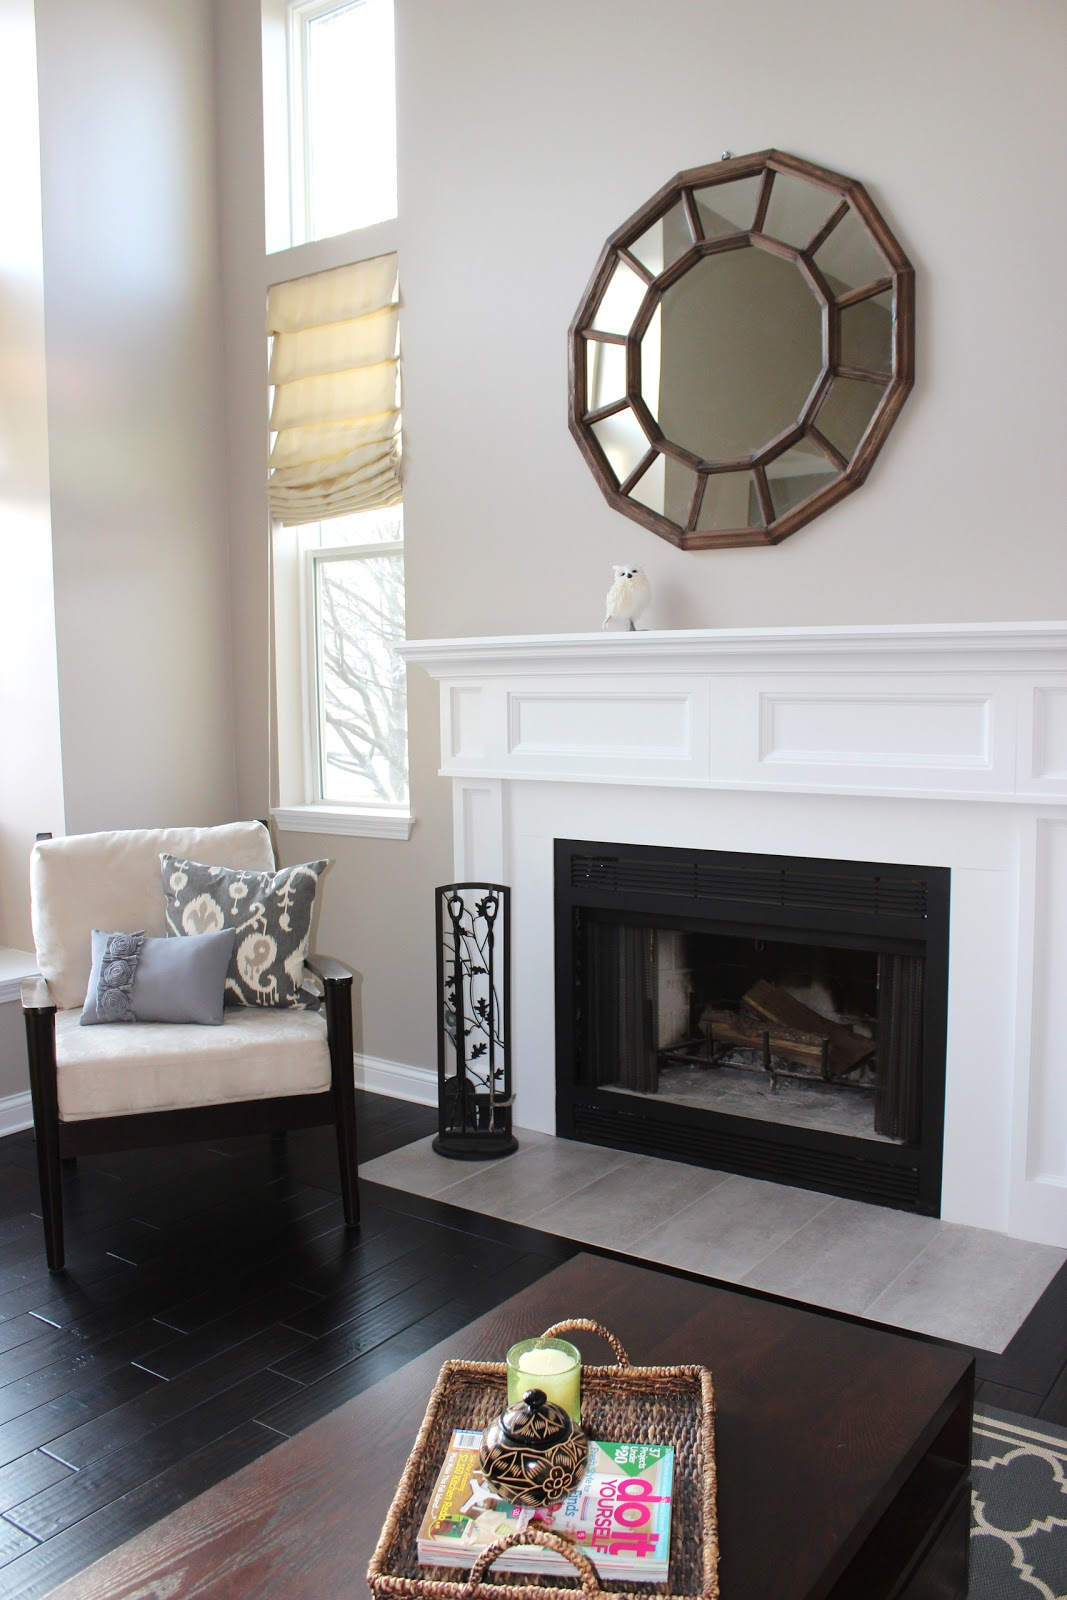 Mirror mirror on the wall 8 fireplace decorating ideas for Decor over fireplace